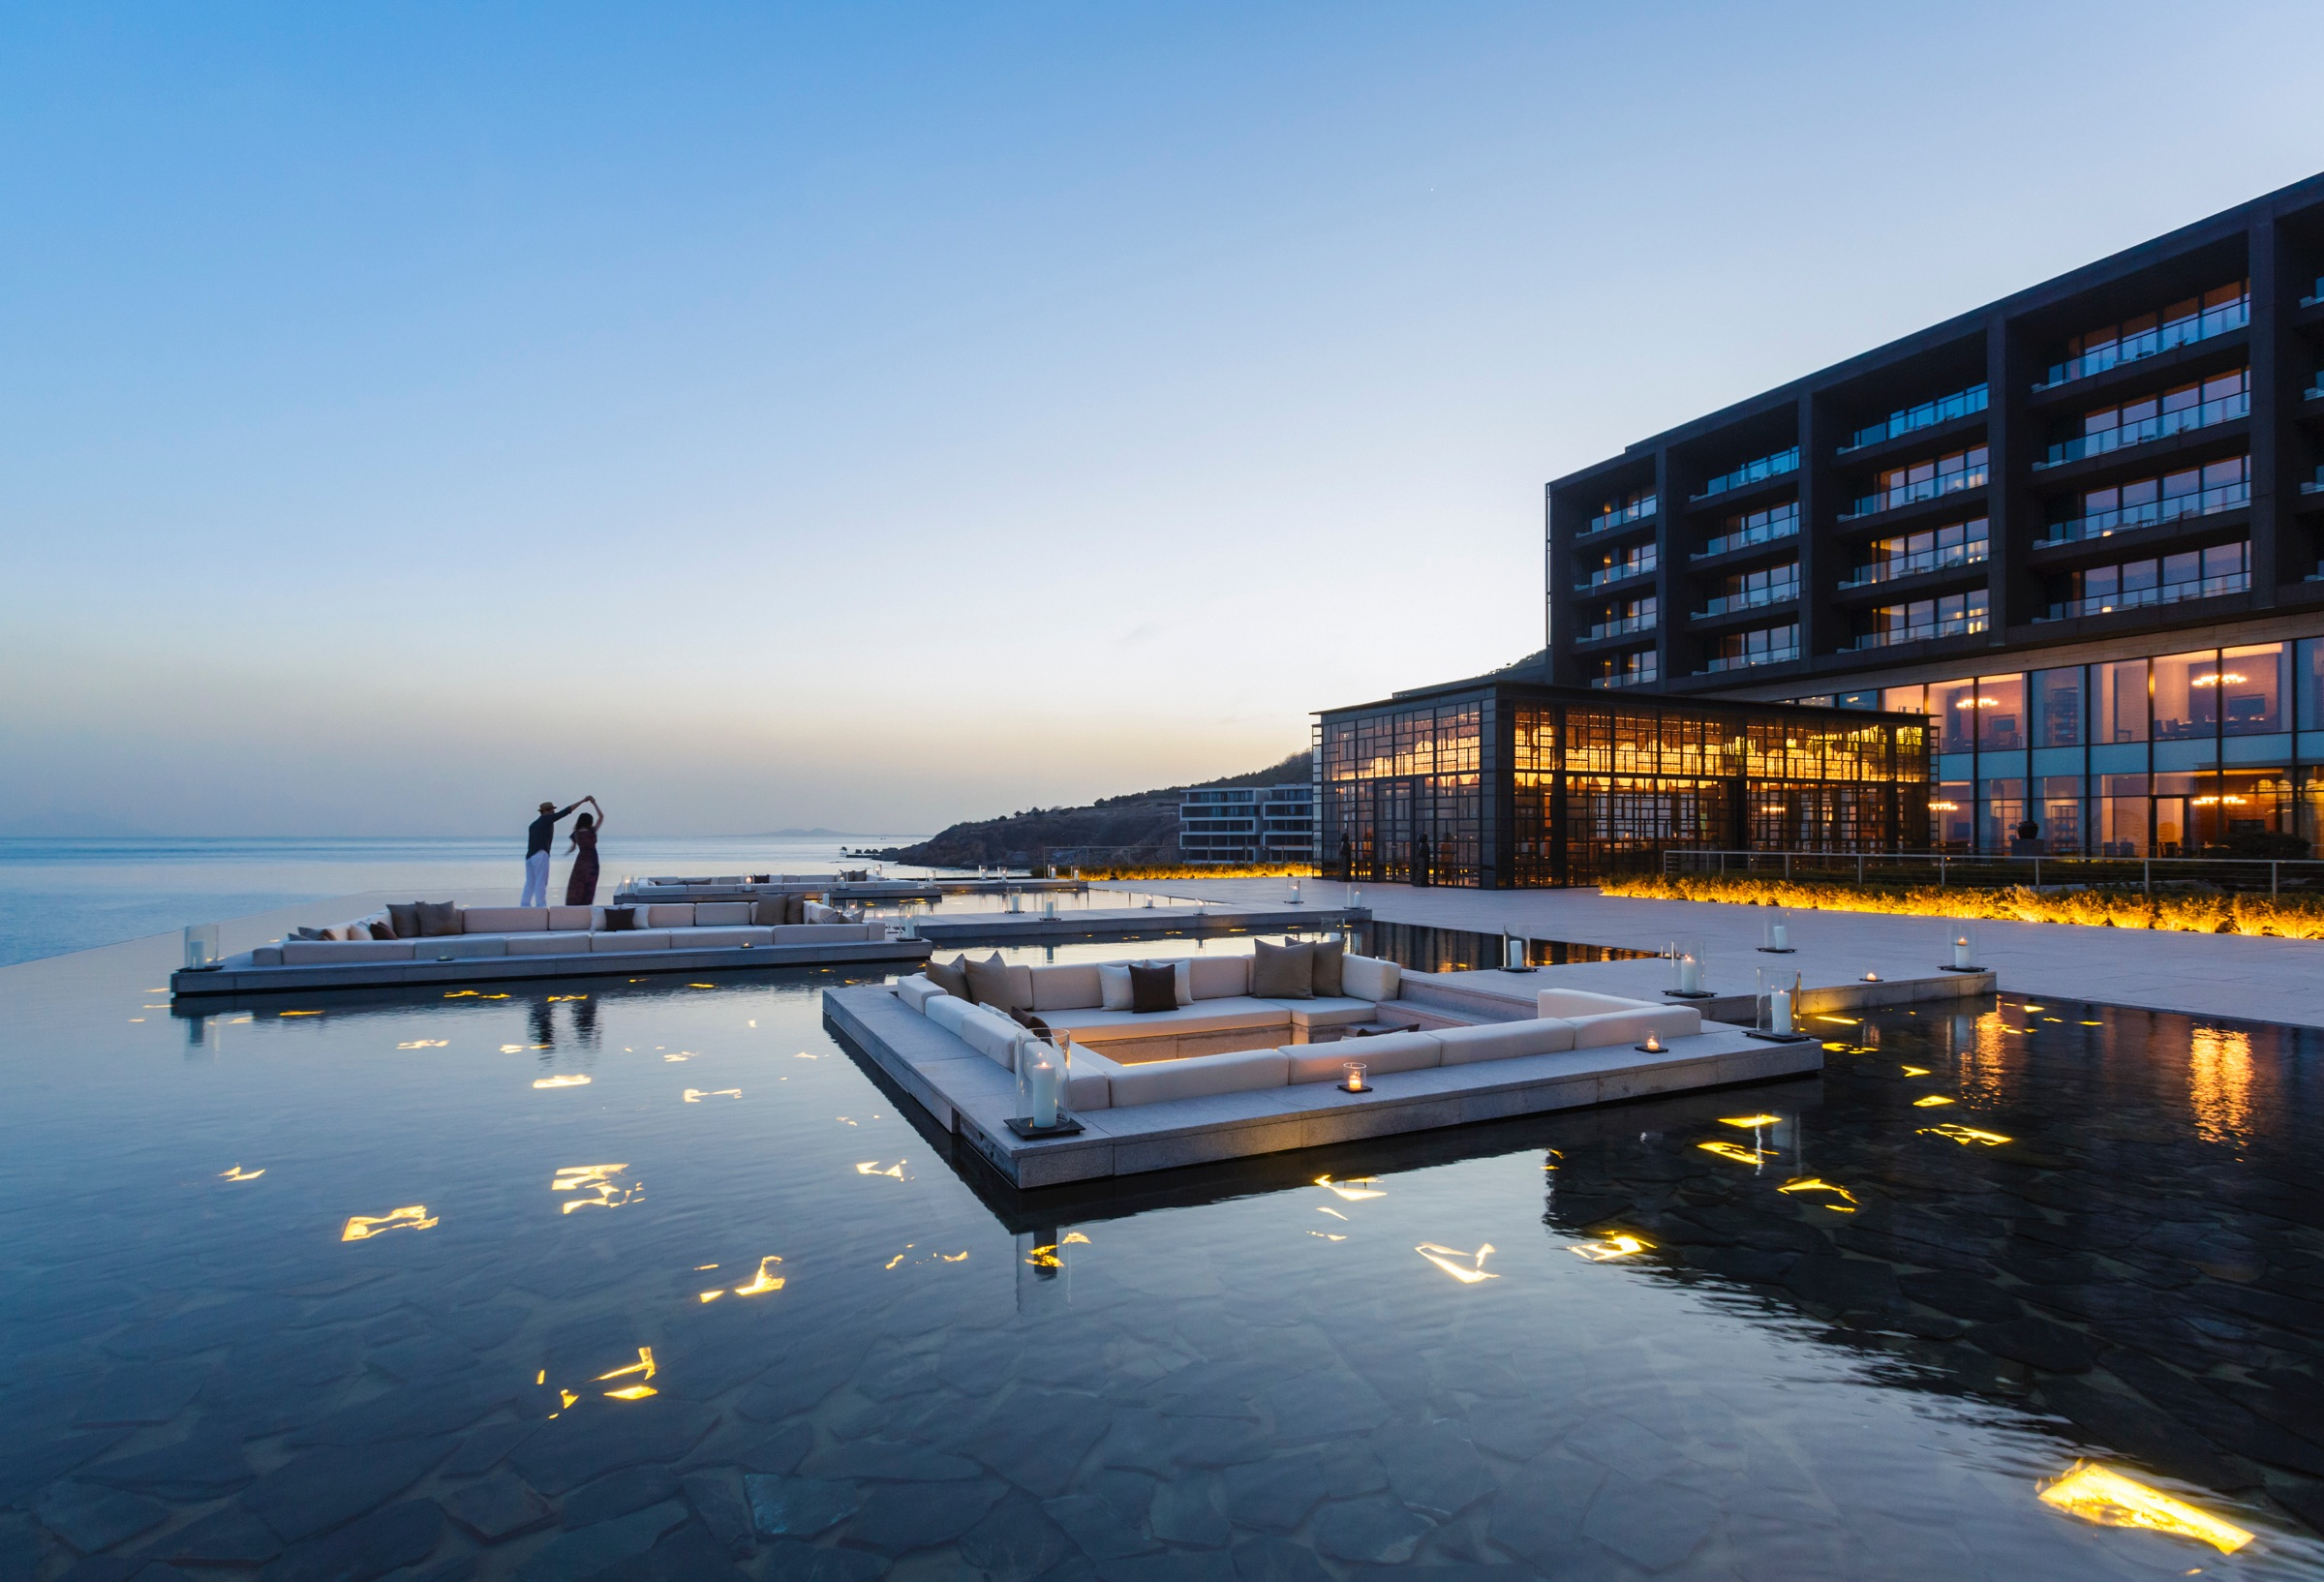 Resort Photography The Lalu Qingdao